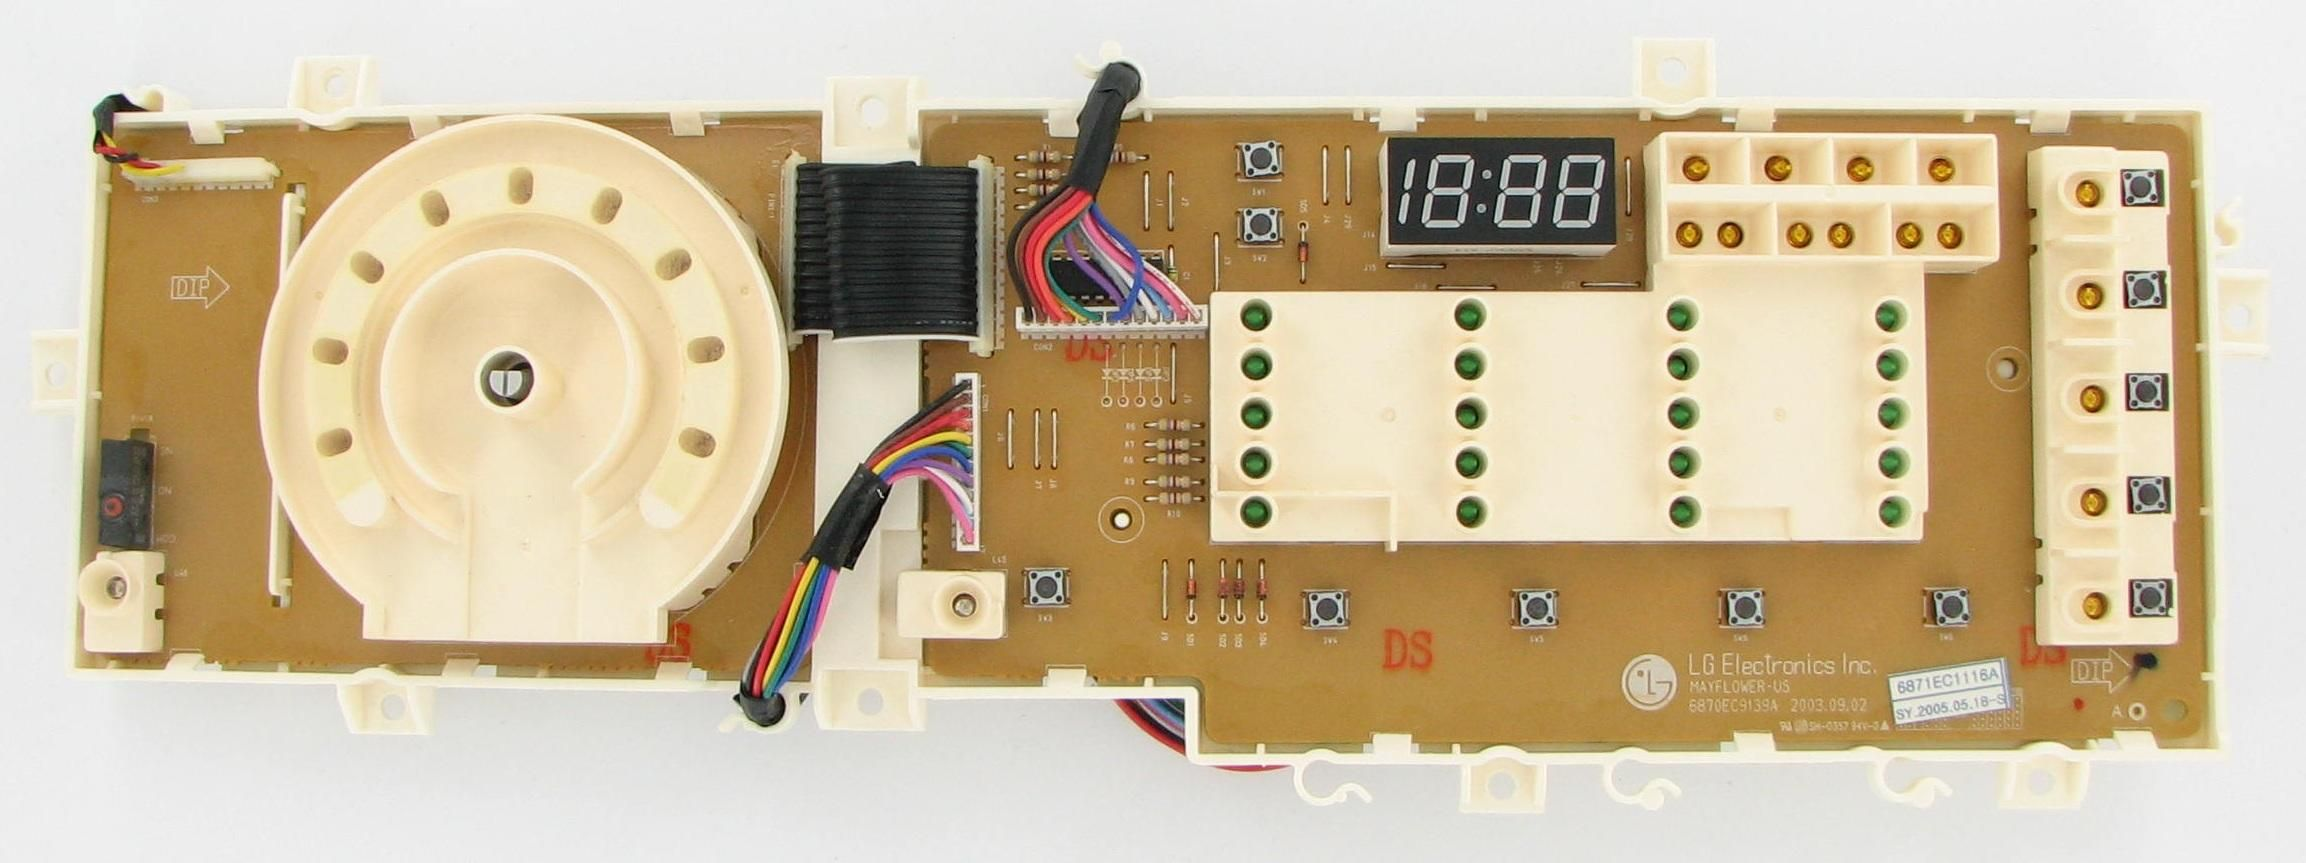 Lg eca laundry washer pcb assembly board control boards